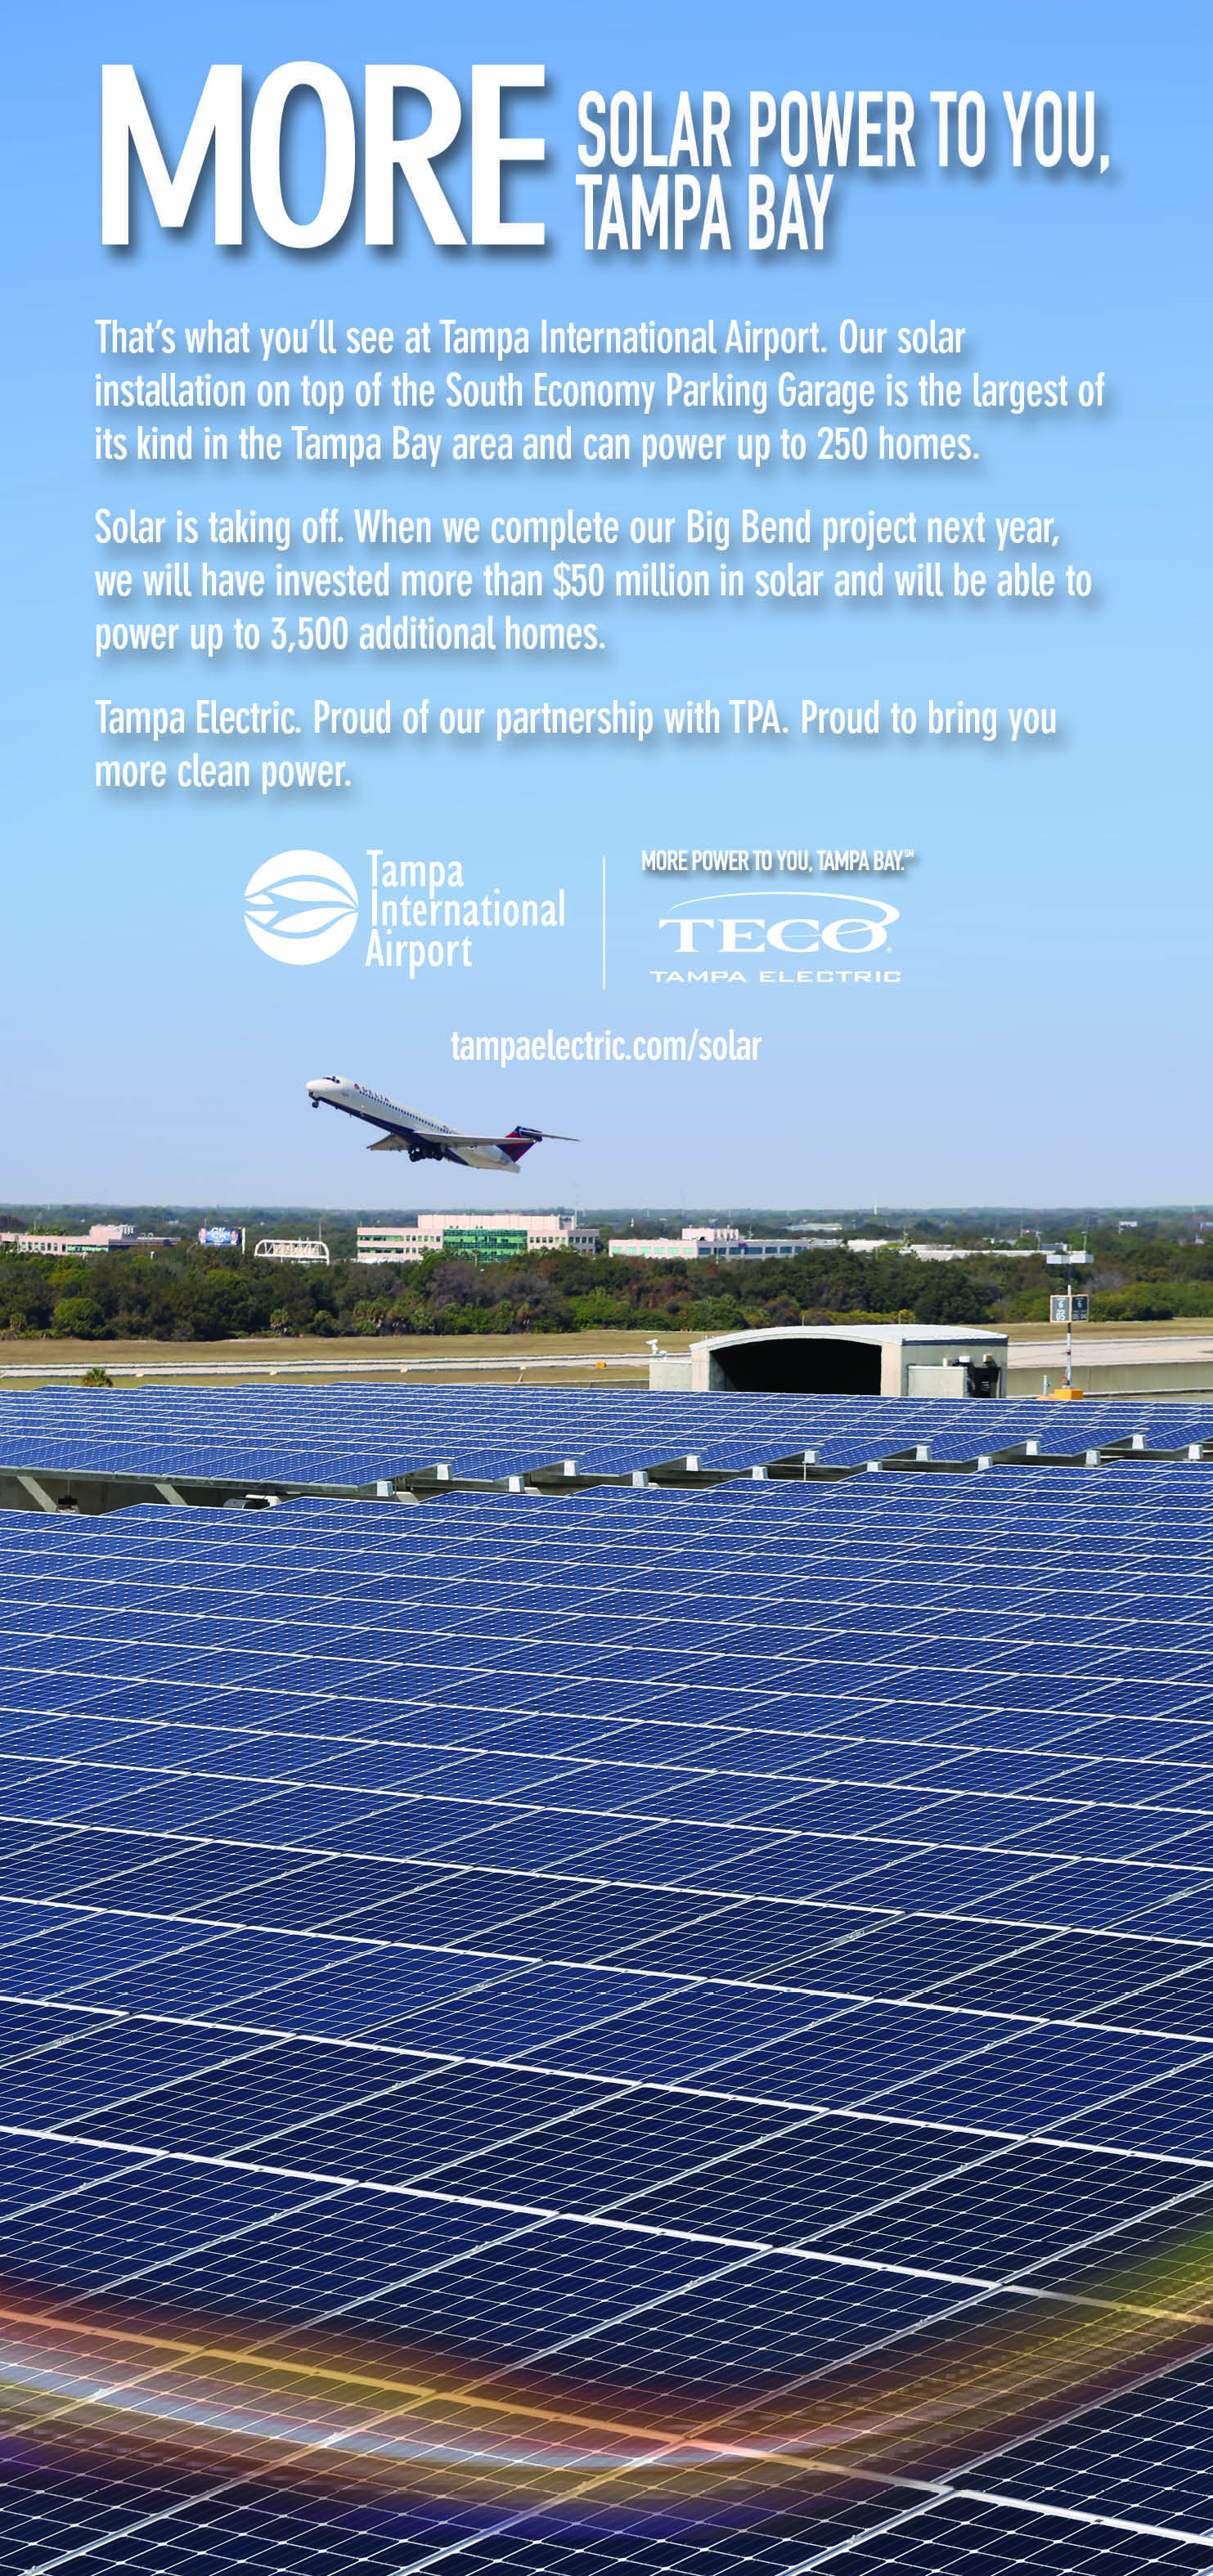 Pin by Ed Van Sant on TECO Tampa international airport